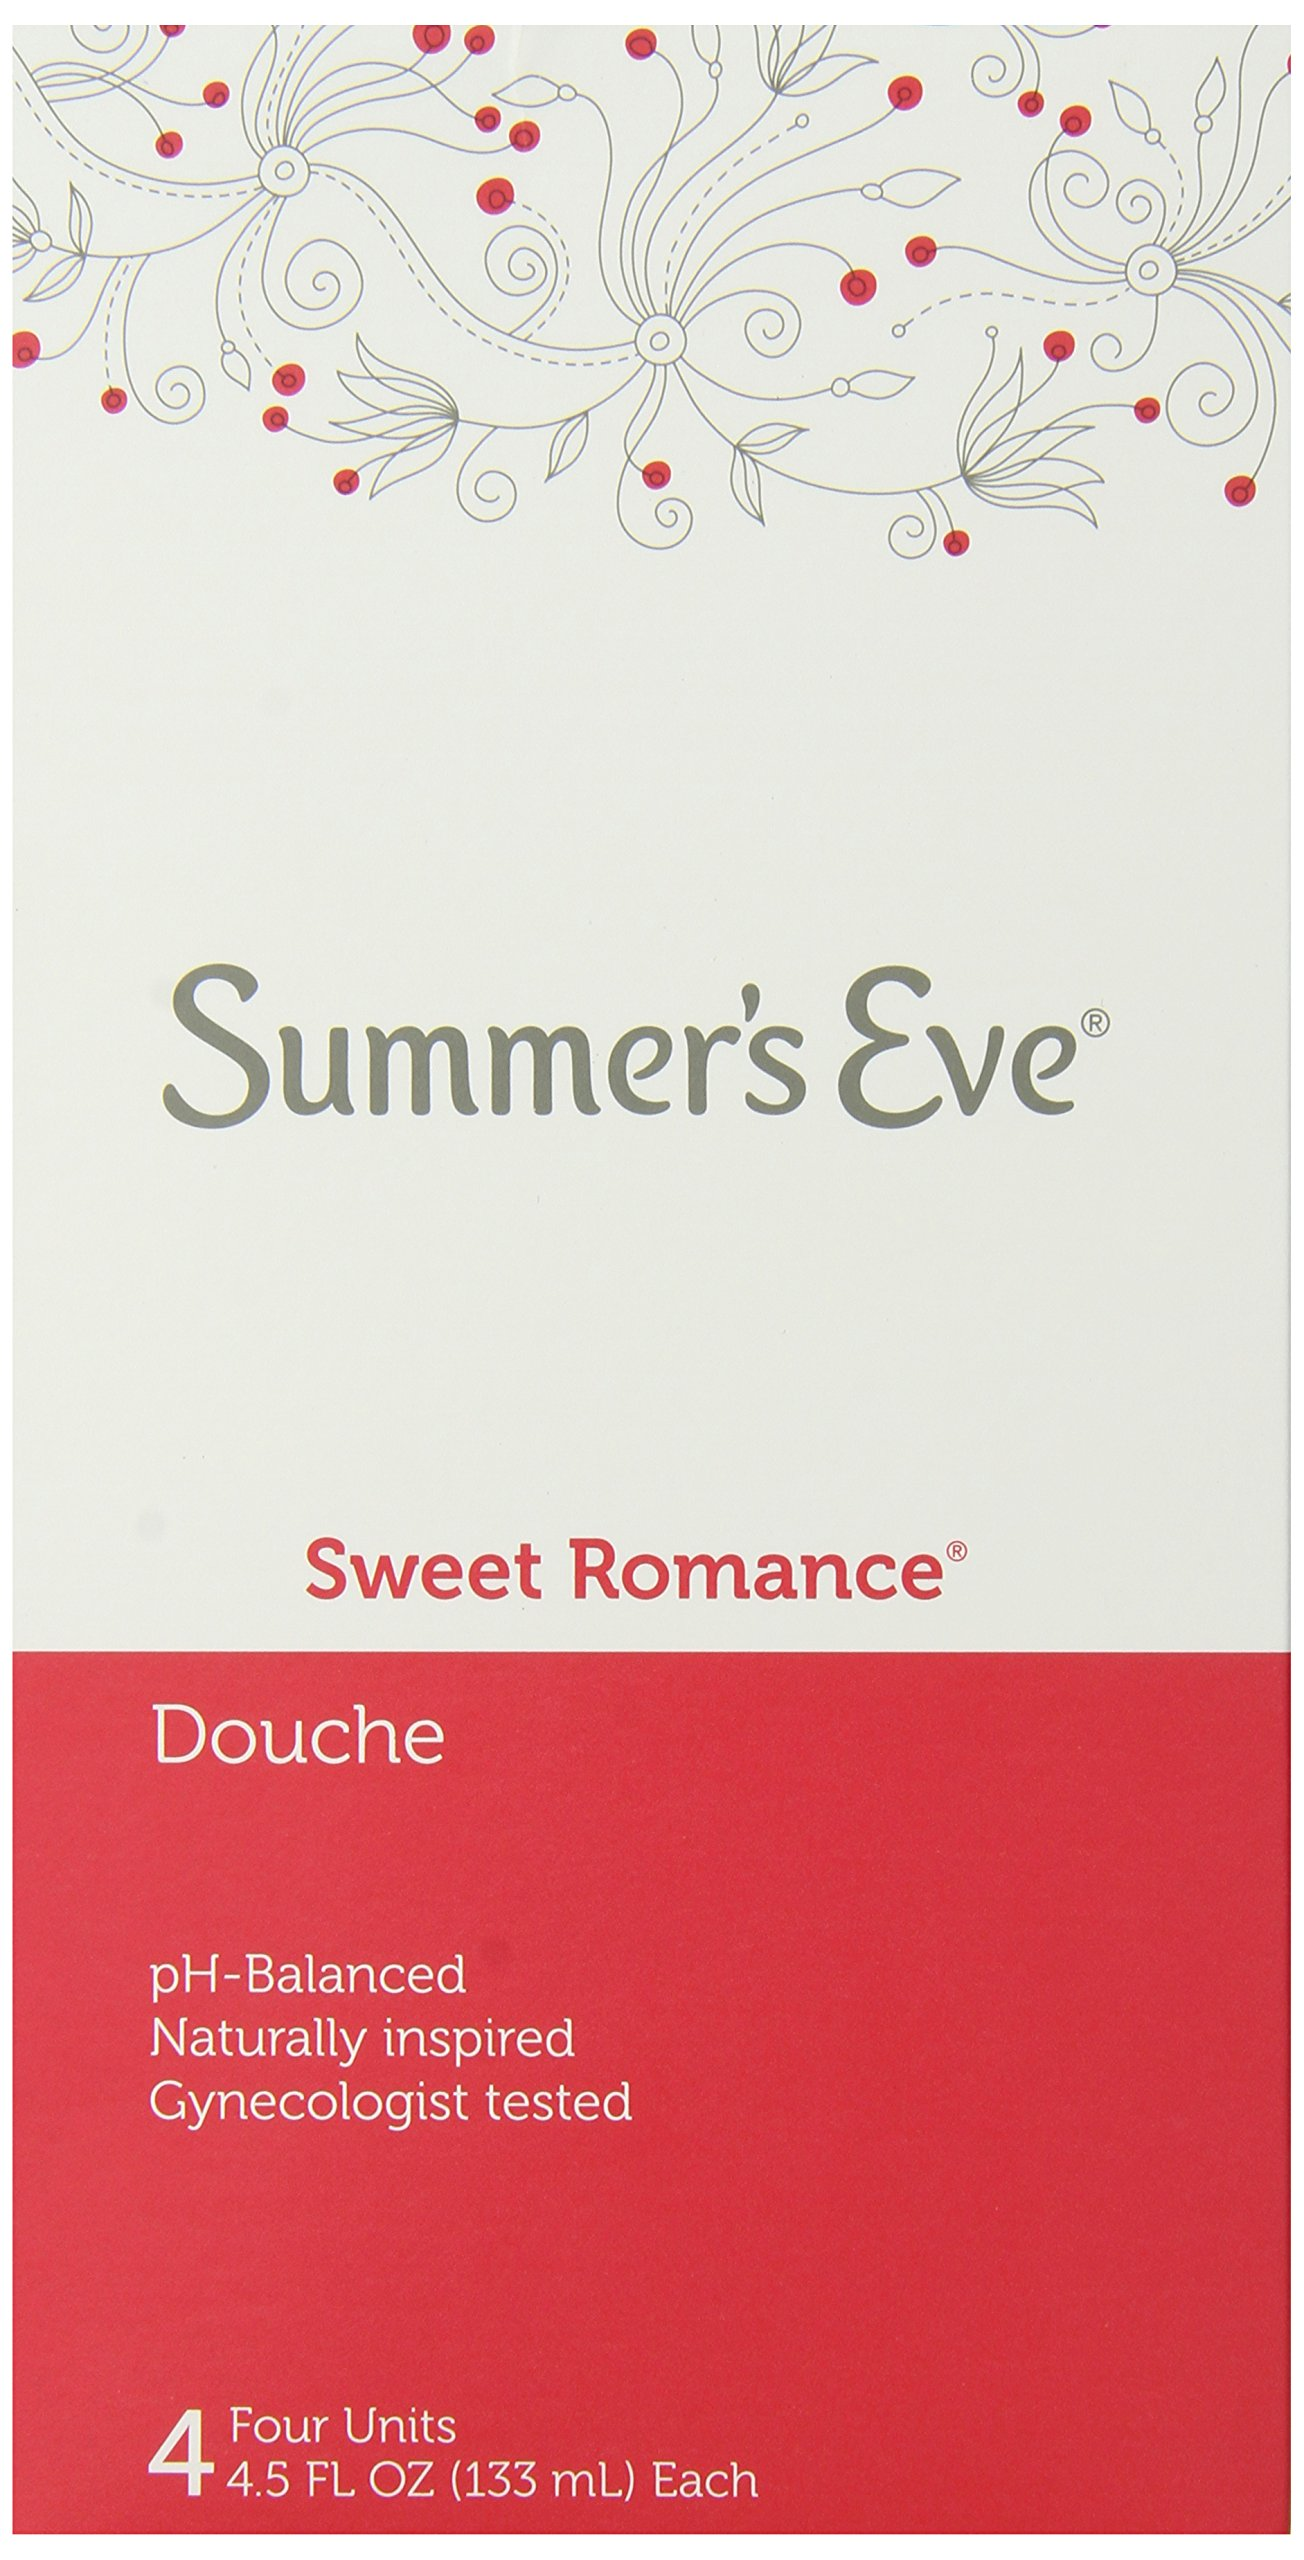 Summer's Eve Douche | Sweet Romance | 4-4.5 Fluid Ounces Each | Pack of 6 | pH Balanced & Gynecologist Tested